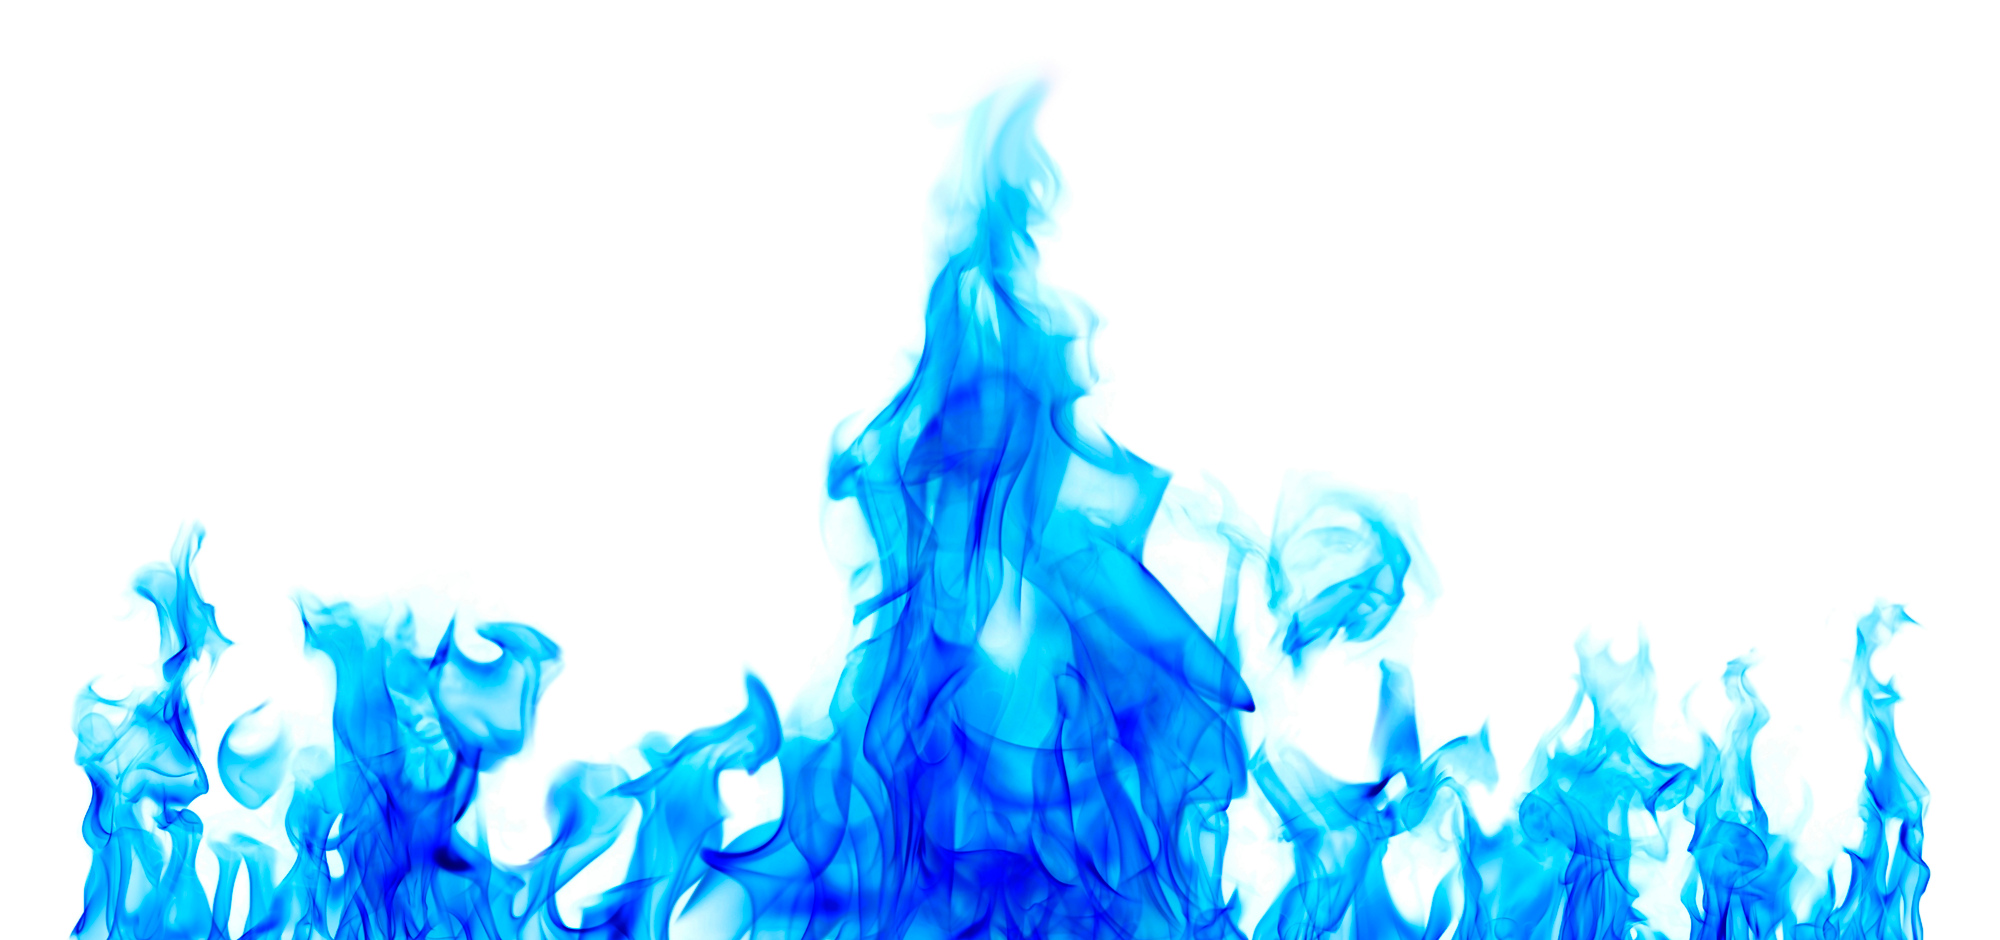 Beautiful Blue Fire Png image #43393